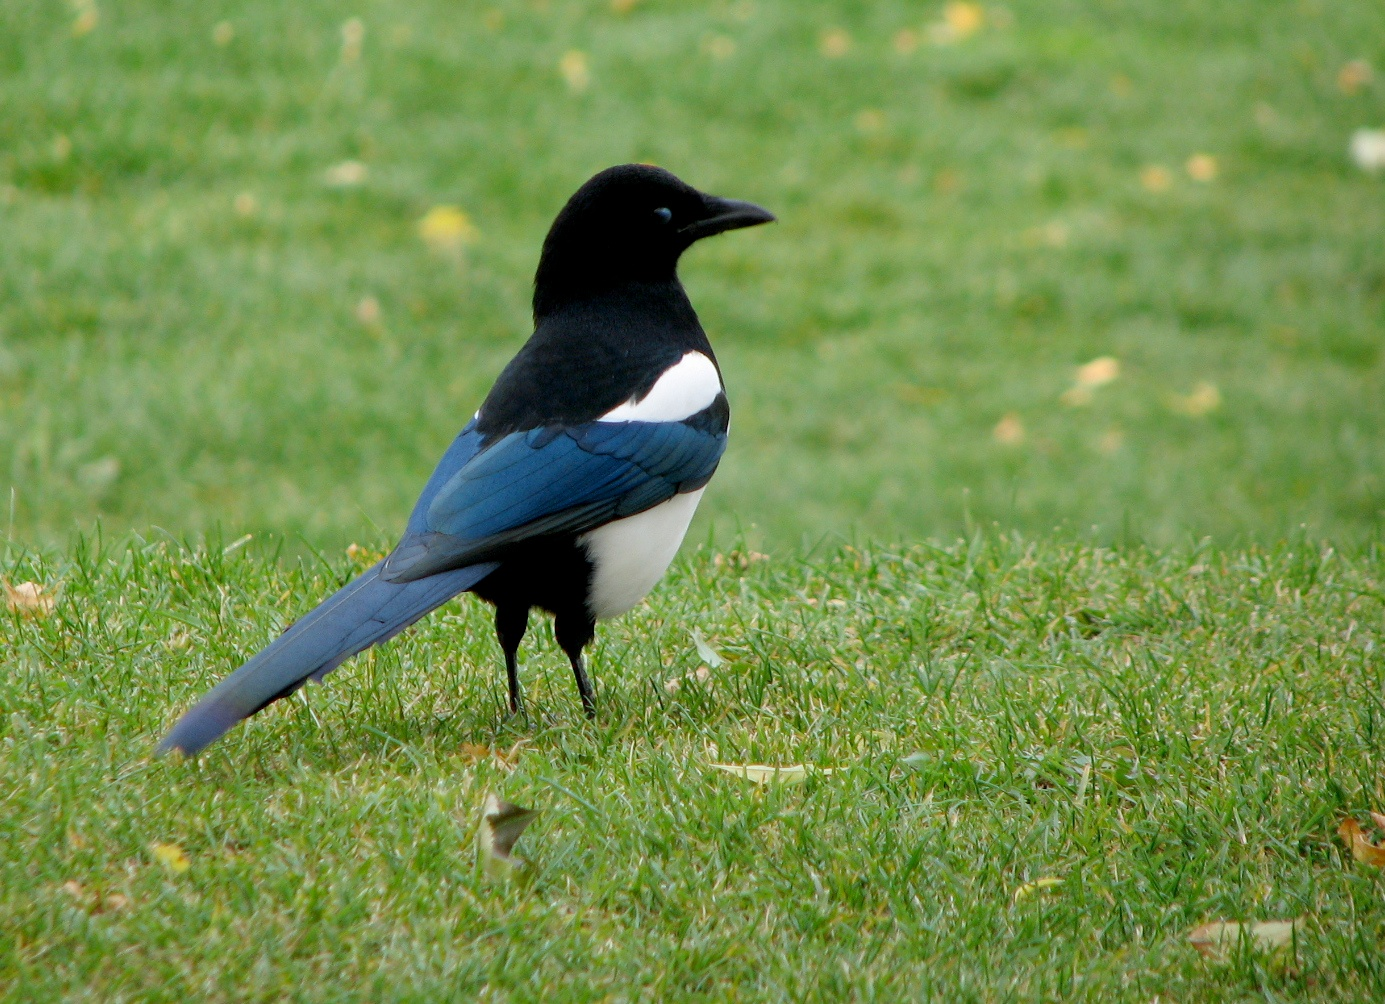 magpie author lucke charlie in a park anchora